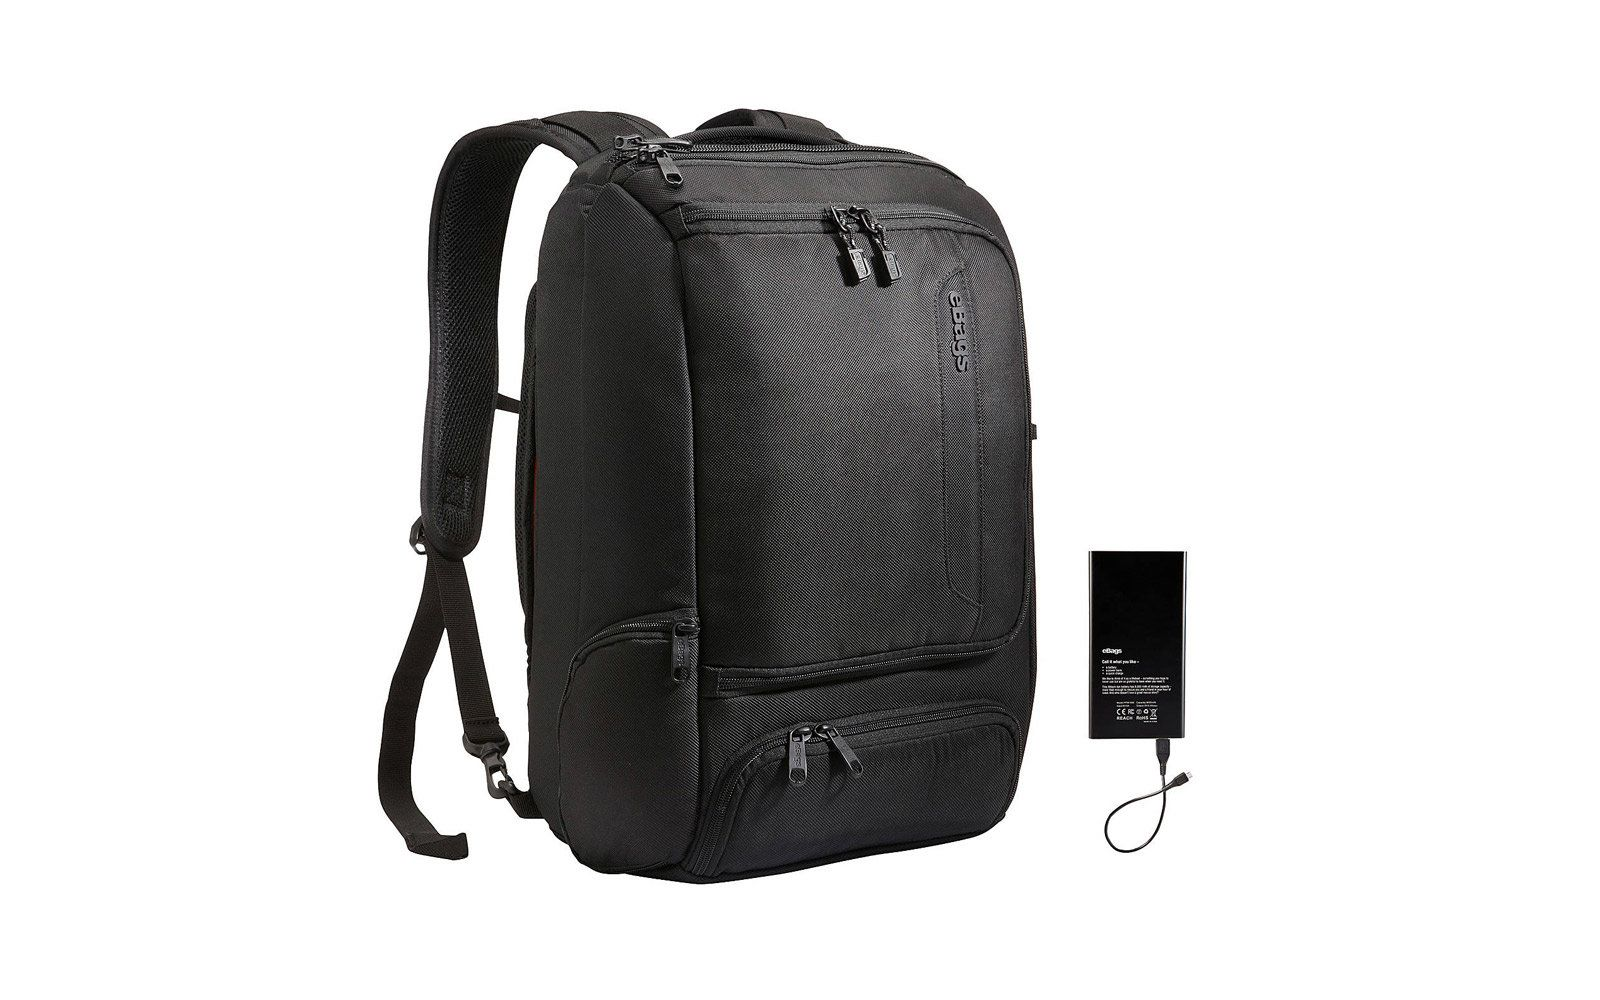 5469d5be6c48 The Best Laptop Backpacks for Travel, According to Frequent Fliers ...